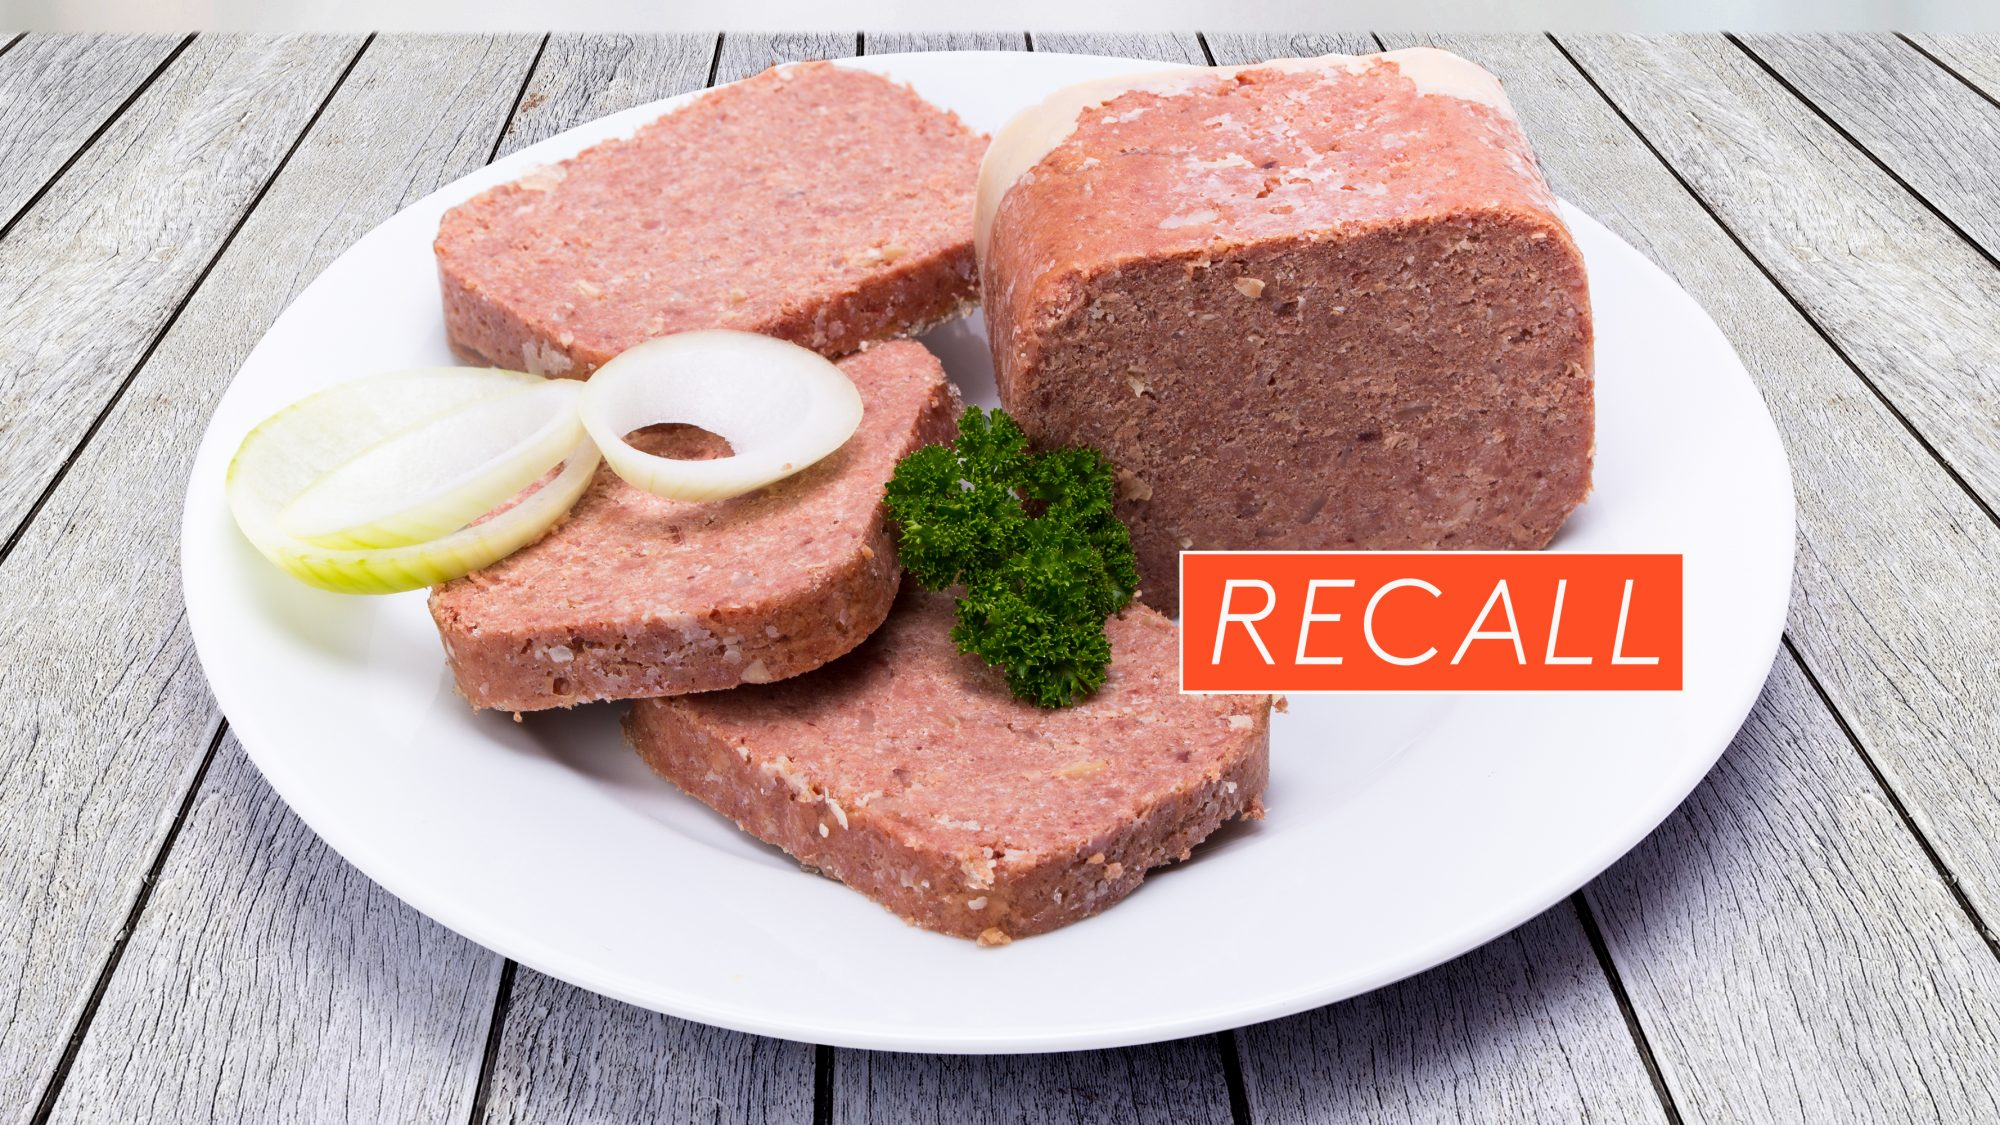 canned-corned-beef-recall